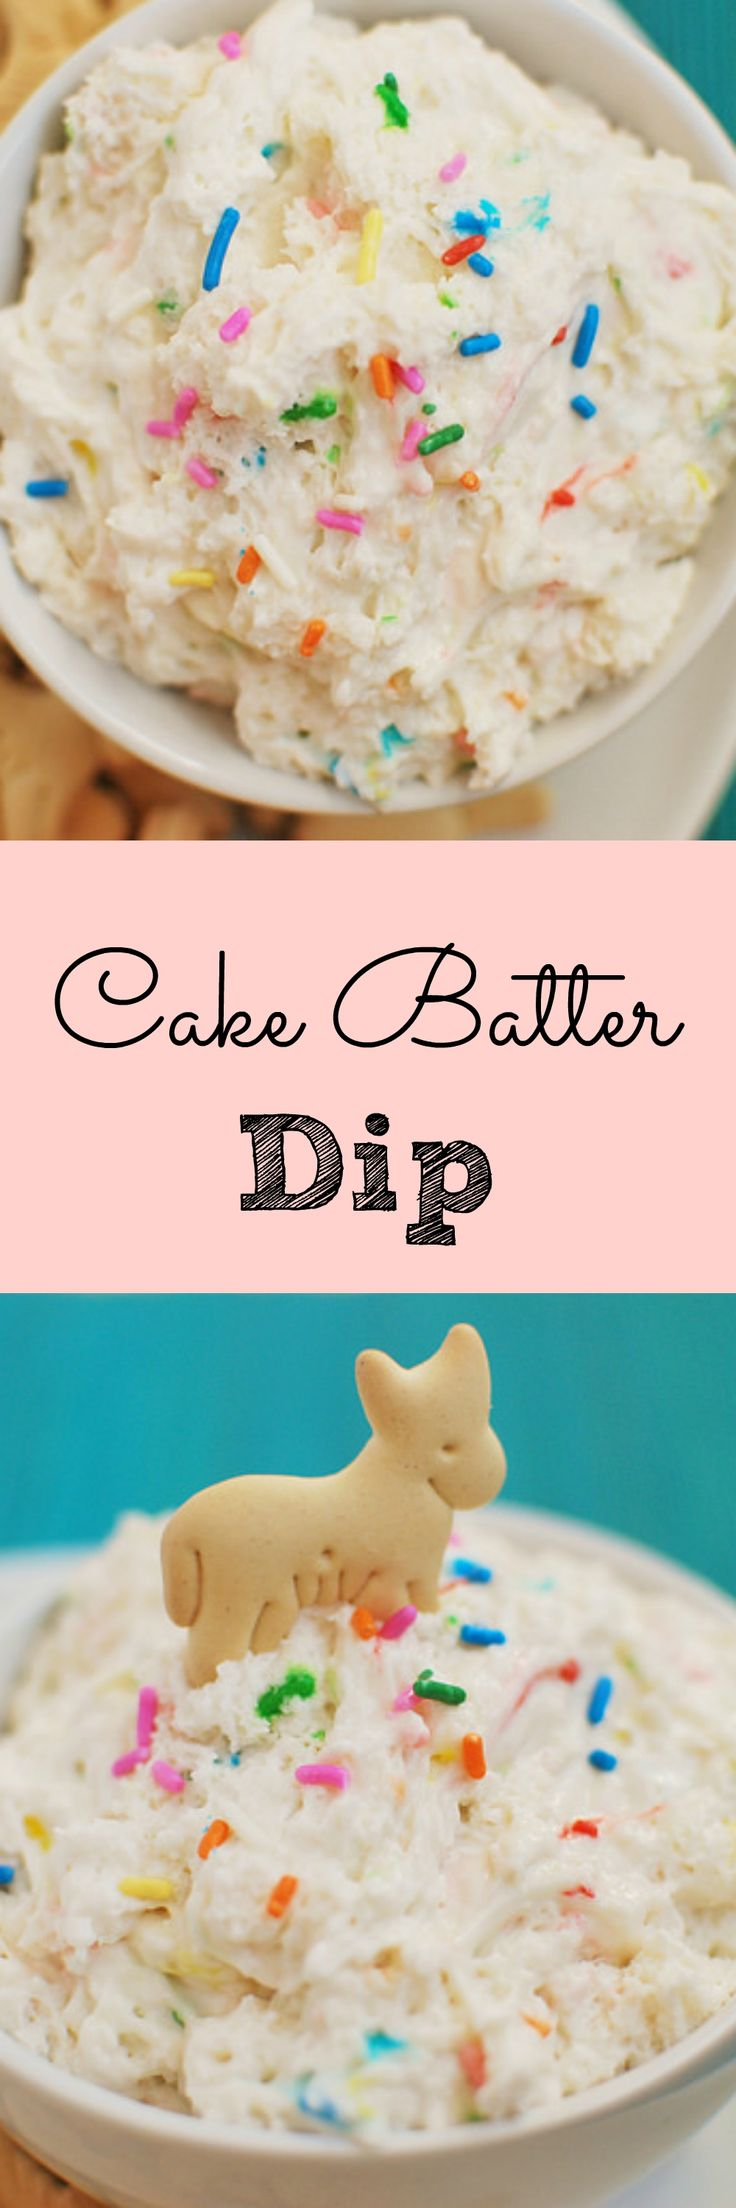 Cake Batter Dip - Ingredients 1 (18.9 oz) box Funfetti cake mix 2 cups fat-free plain Greek yogurt 1 cup lite Cool Whip Instructions In a large mixing bowl, use a rubber spatula to mix cake mix, Greek yogurt, and Cool Whip together until no lumps remain. Cover and refrigerate for at least 4 hours. Serve with fruit or animal crackers.